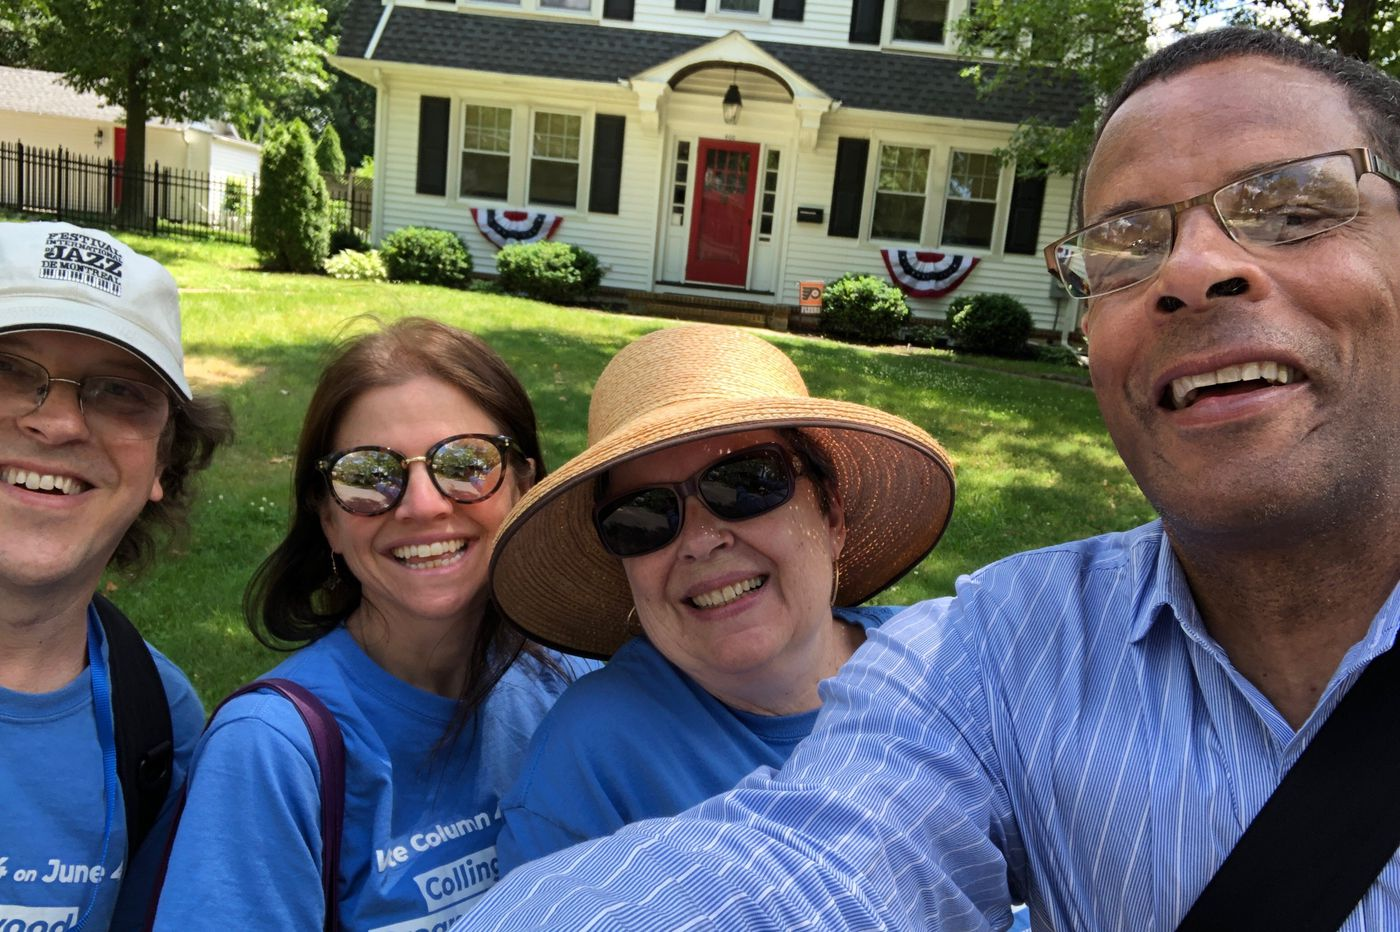 After losing everywhere else, anti-Norcross Democrats see hope in Collingswood win